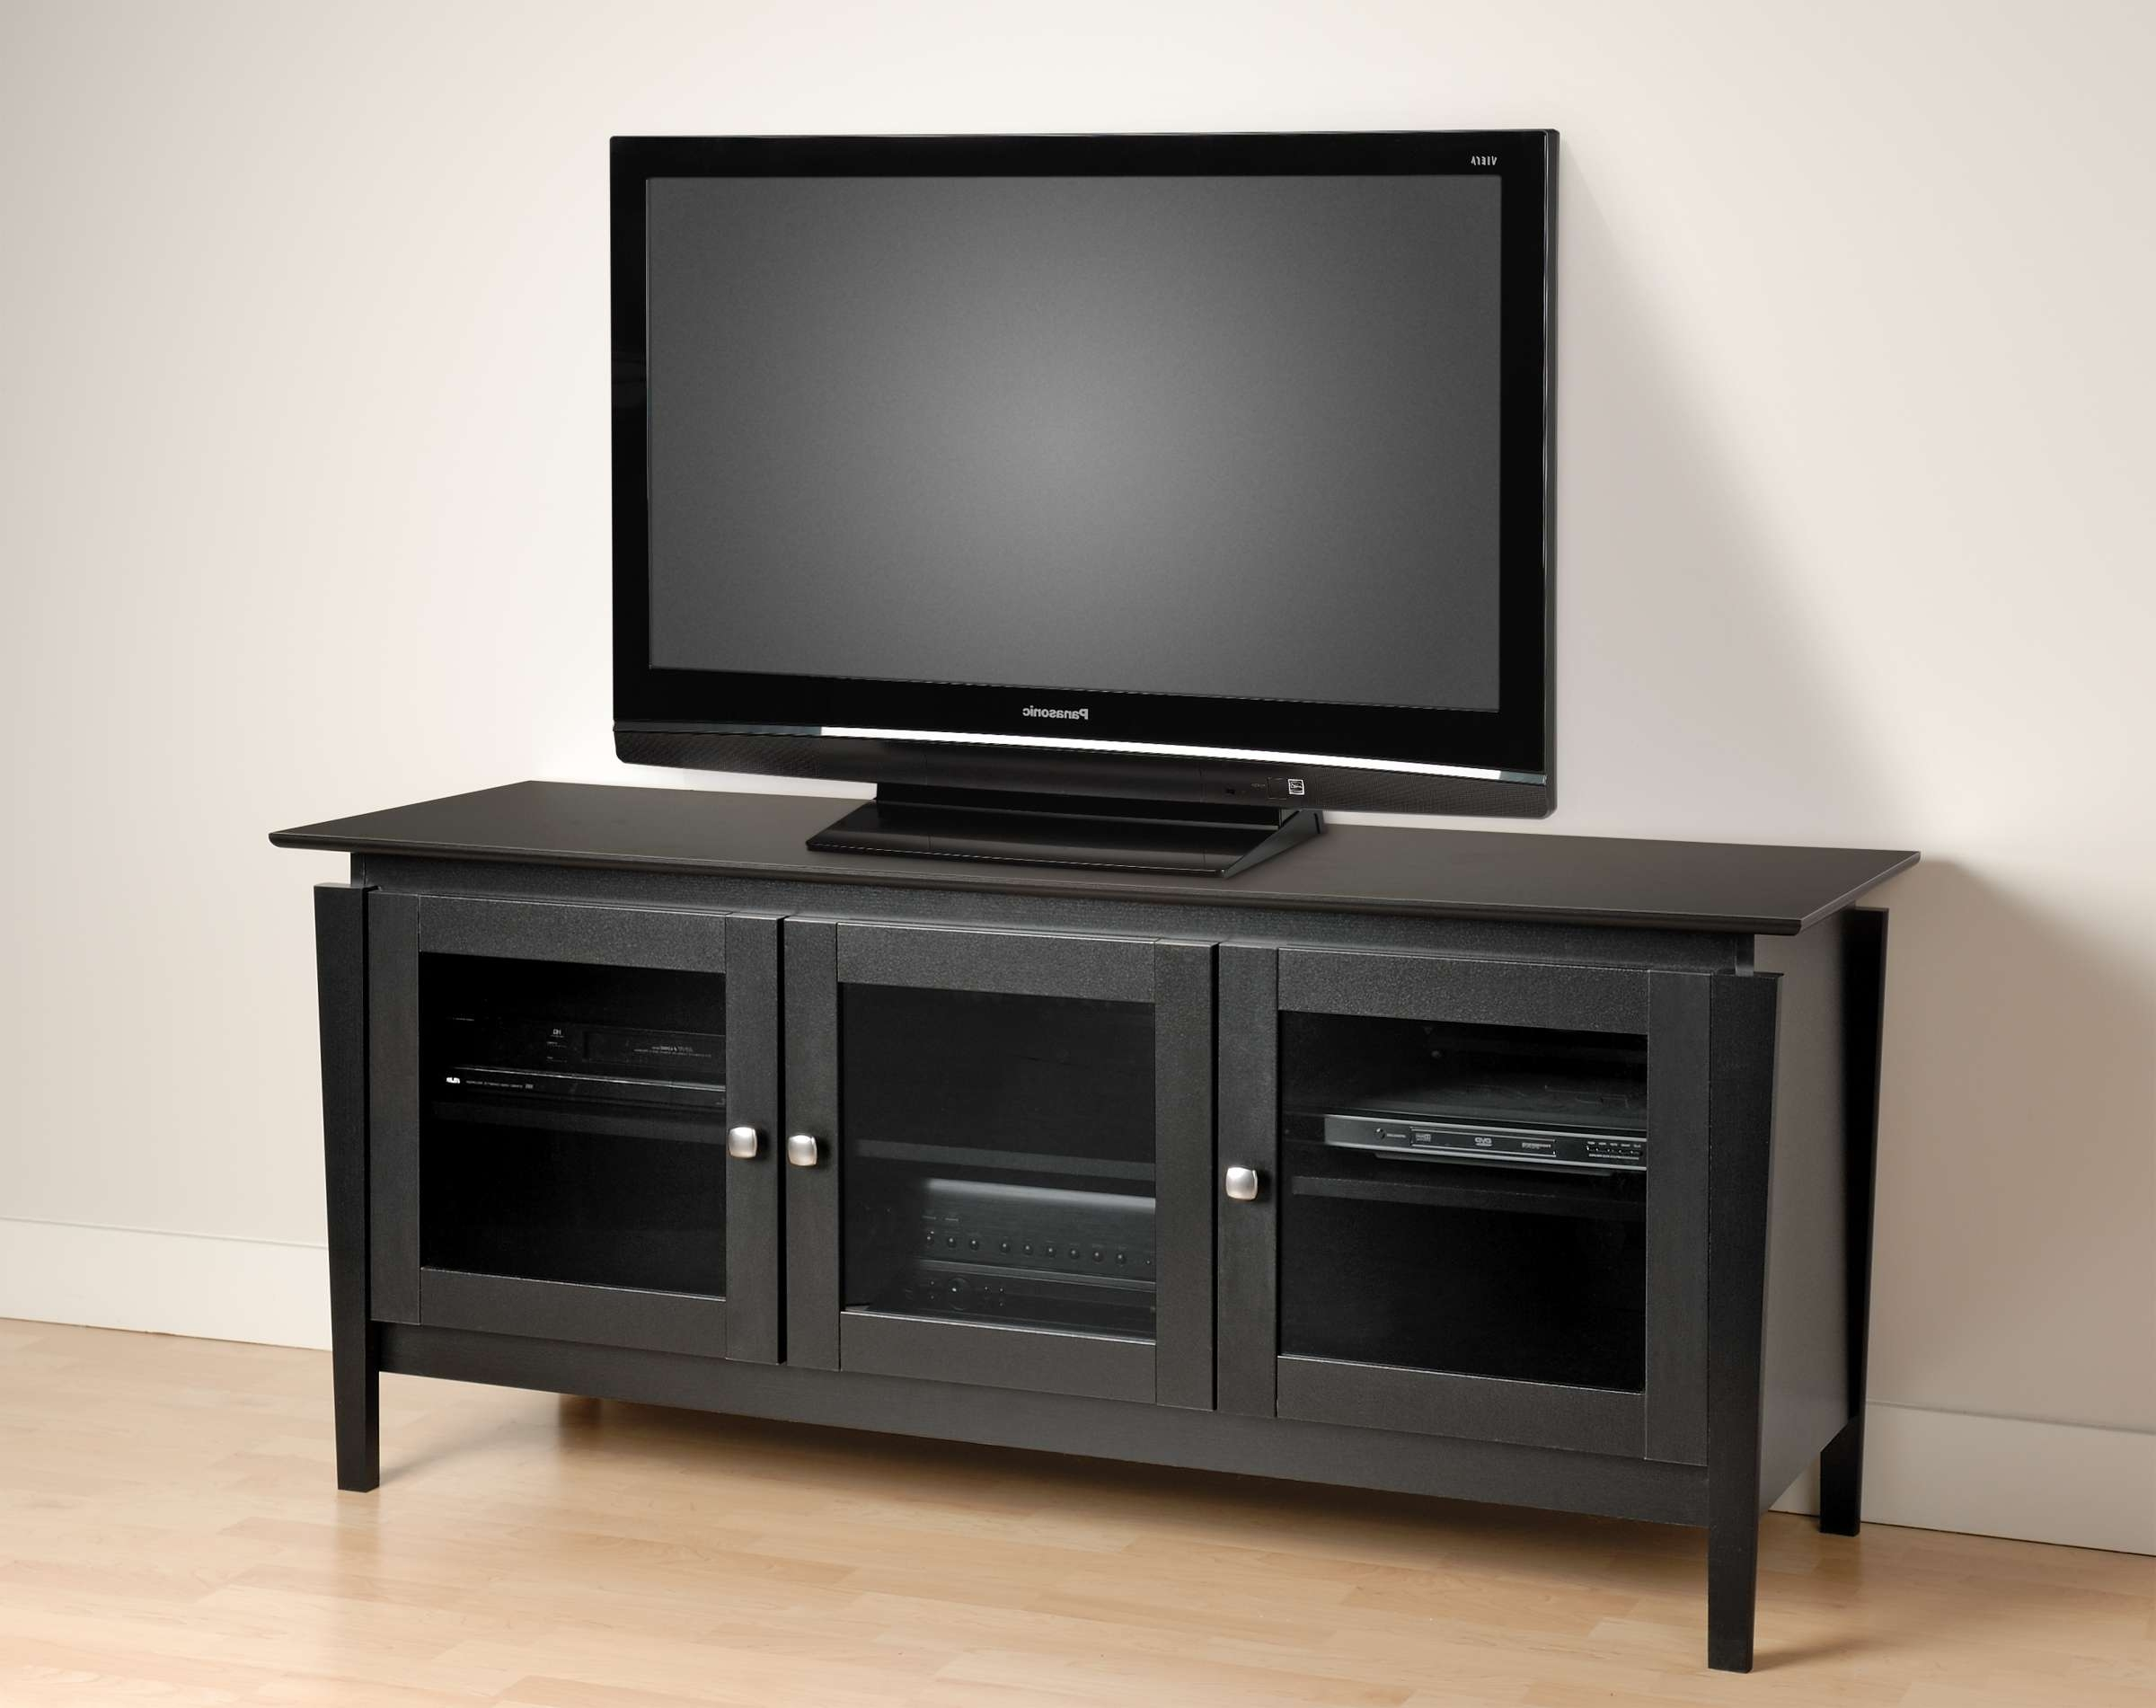 Modern Black Stained Oak Wood Media Cabinet With Glass Doors Of With Wooden Tv Cabinets With Glass Doors (View 11 of 20)